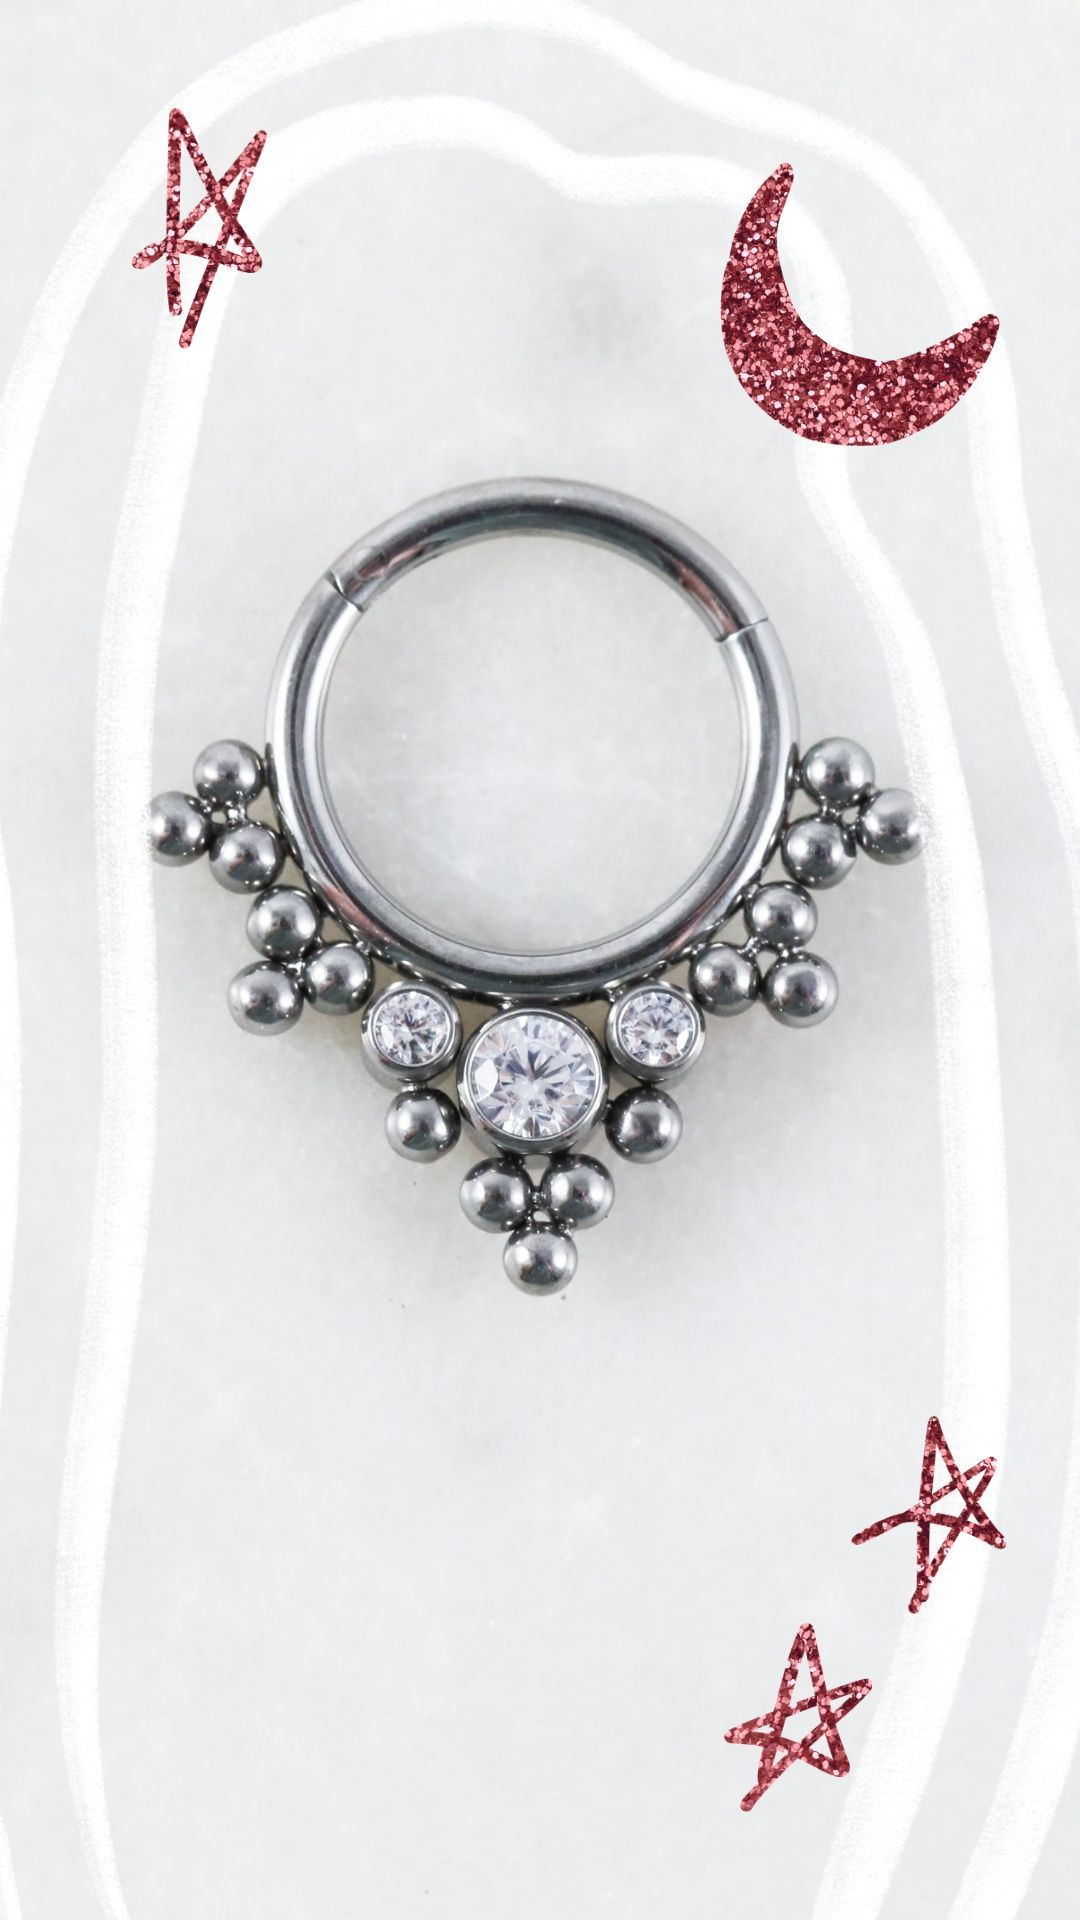 The Alannah Hinged Seam Ring is an intricate beauty featuring two crystals in the center of a beaded design. Its great for your daith, septum, lobe, or helix/cartilage piercings!